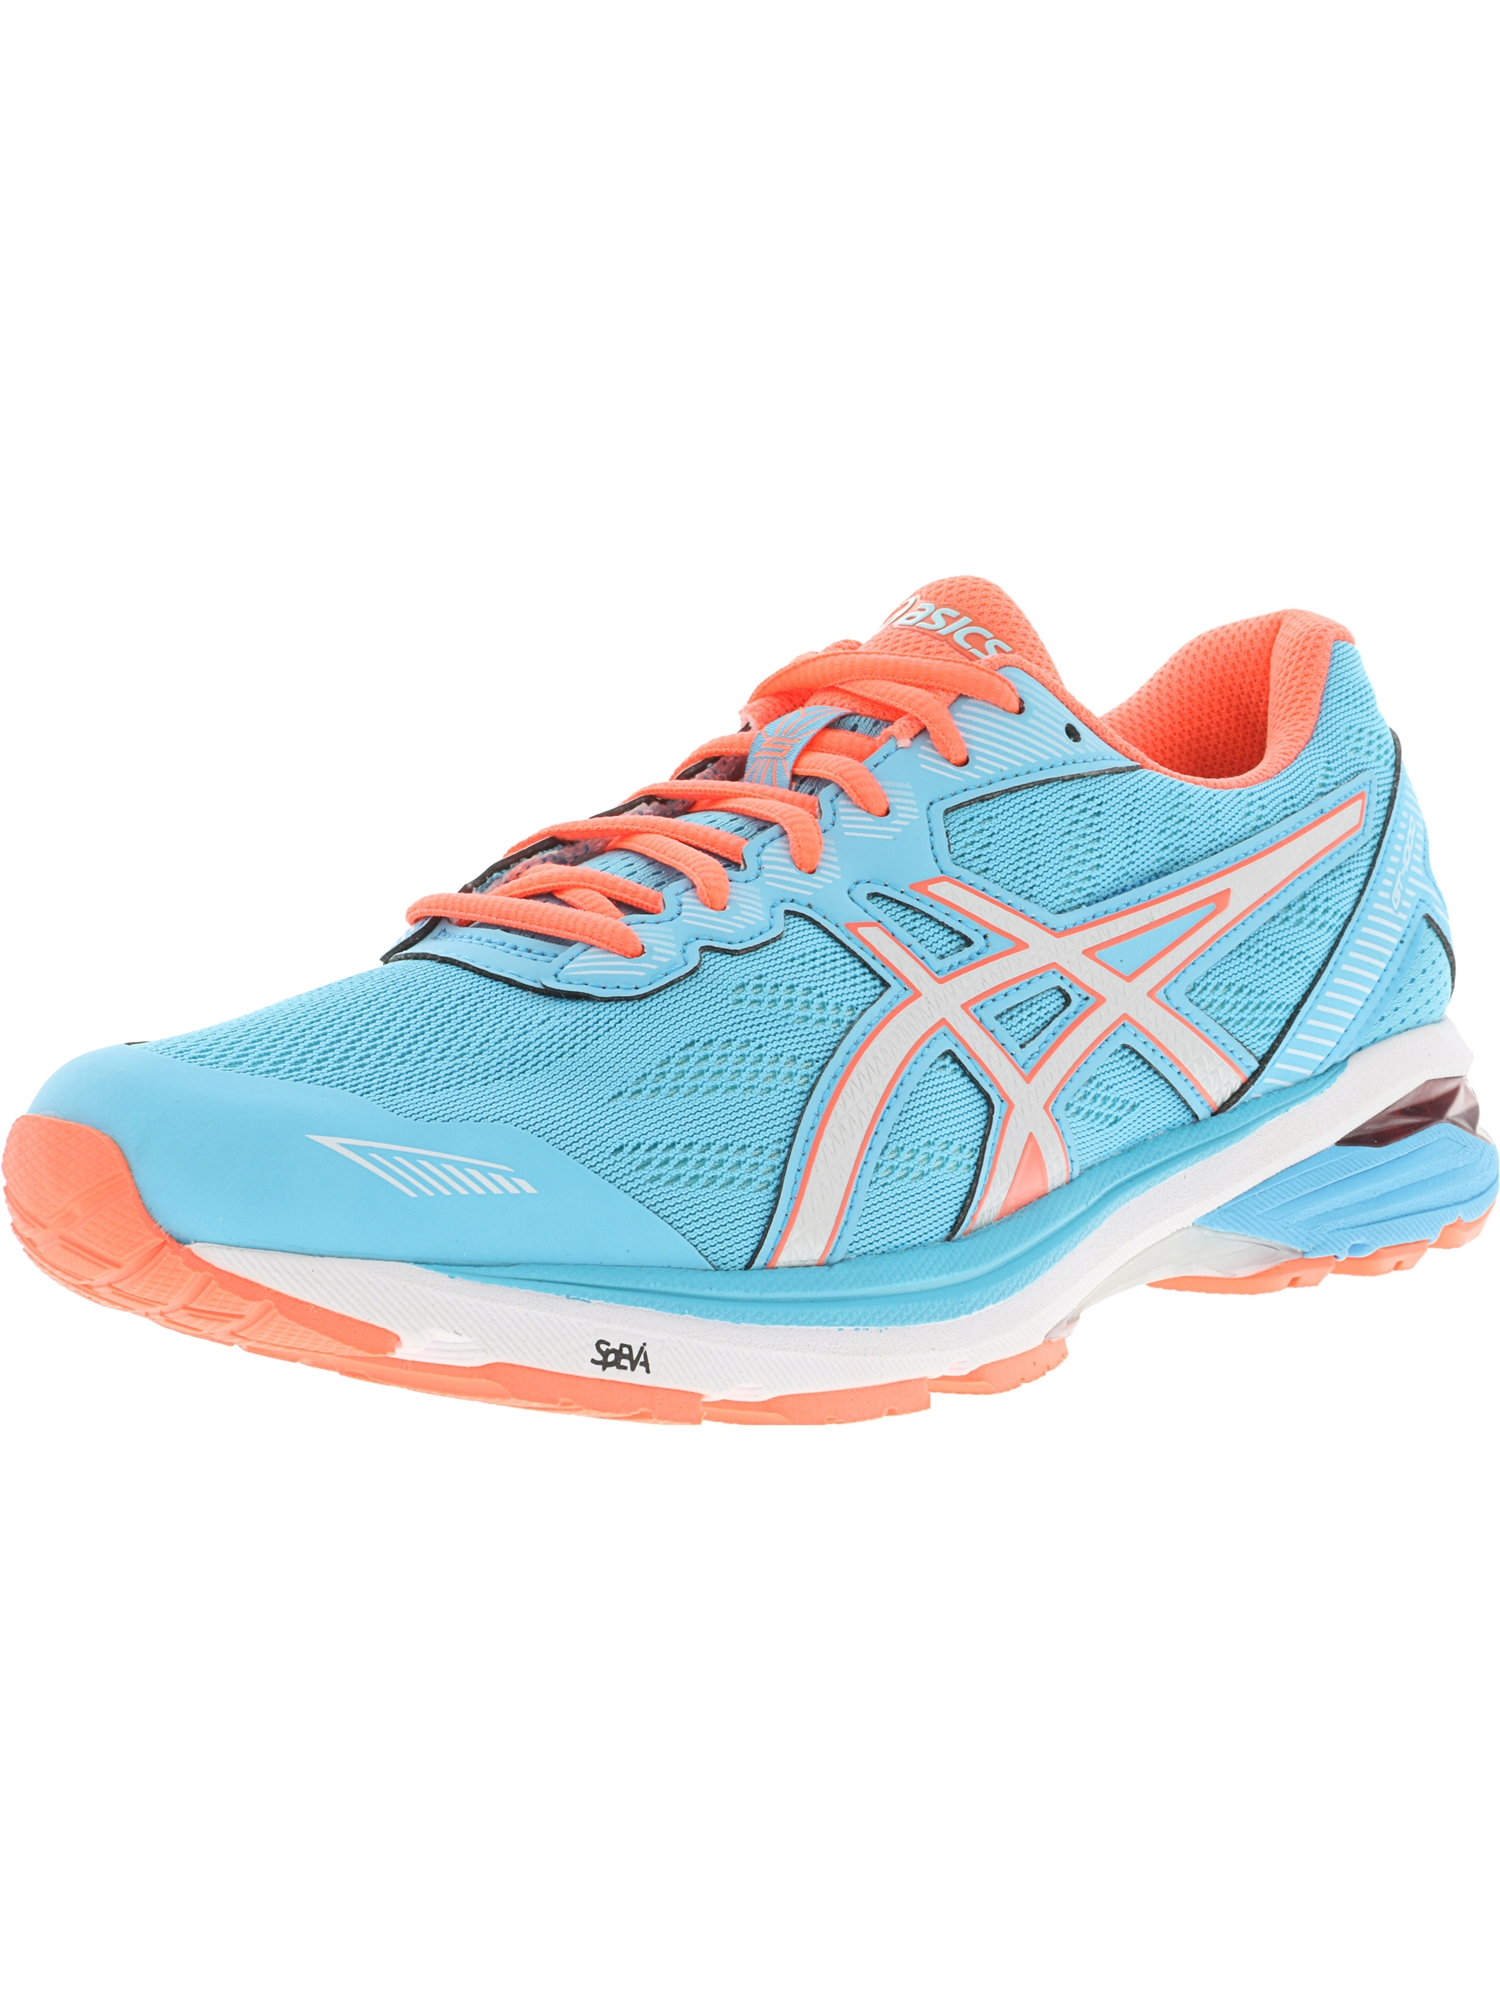 Asics Women's Gt-1000 5 Mint/Orchid/Cockatoo Ankle-High Running Shoe - 5.5W